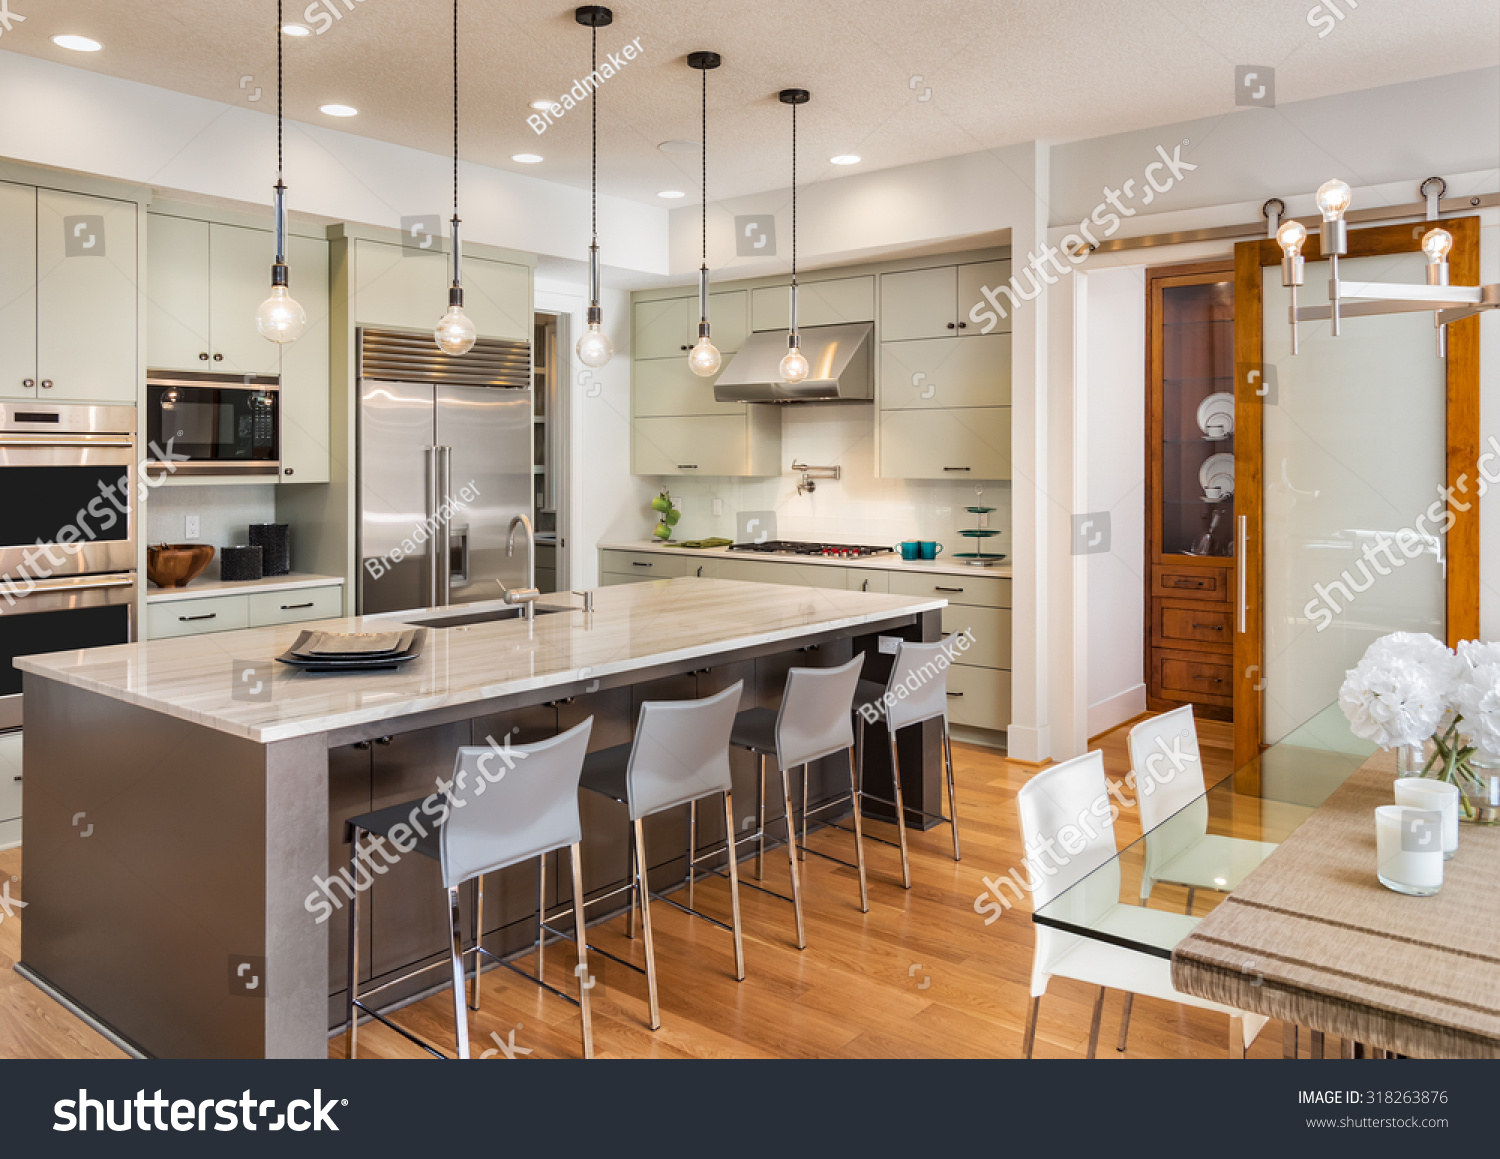 Beautiful Kitchen Interior New Luxury Home Stock Photo 318263876  Shutterstock